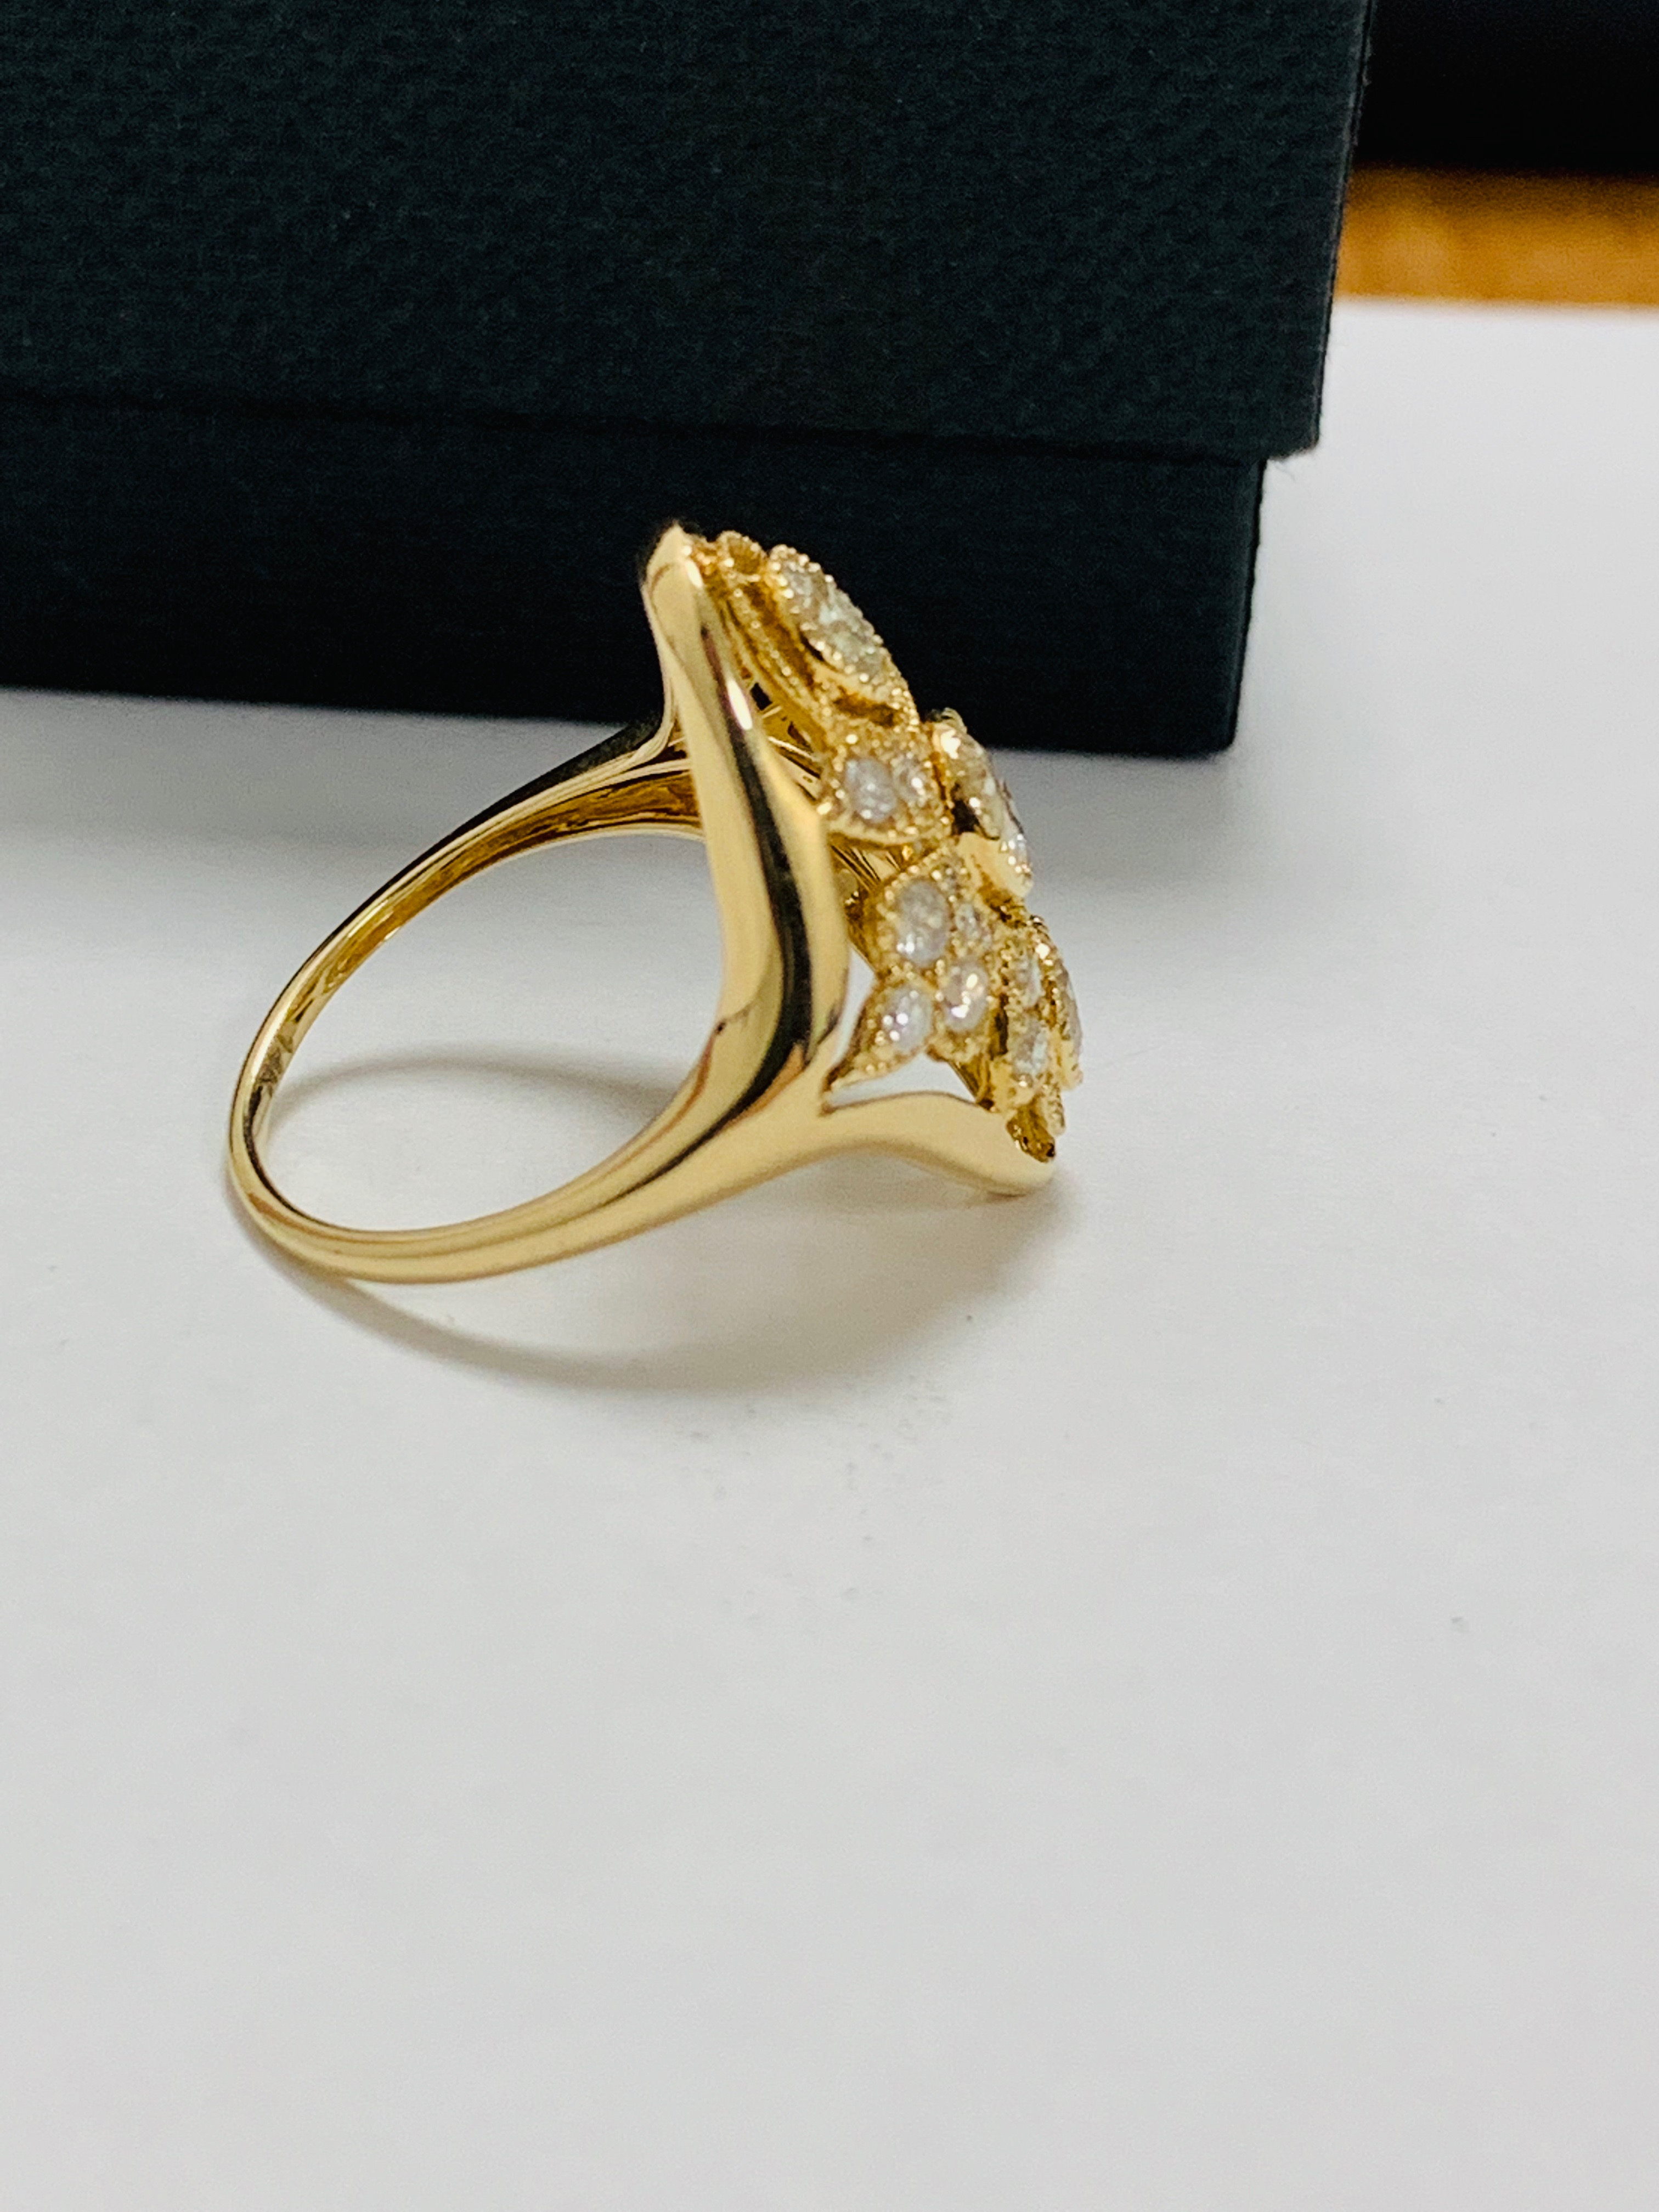 14ct yellow gold diamond ring. - Image 7 of 11